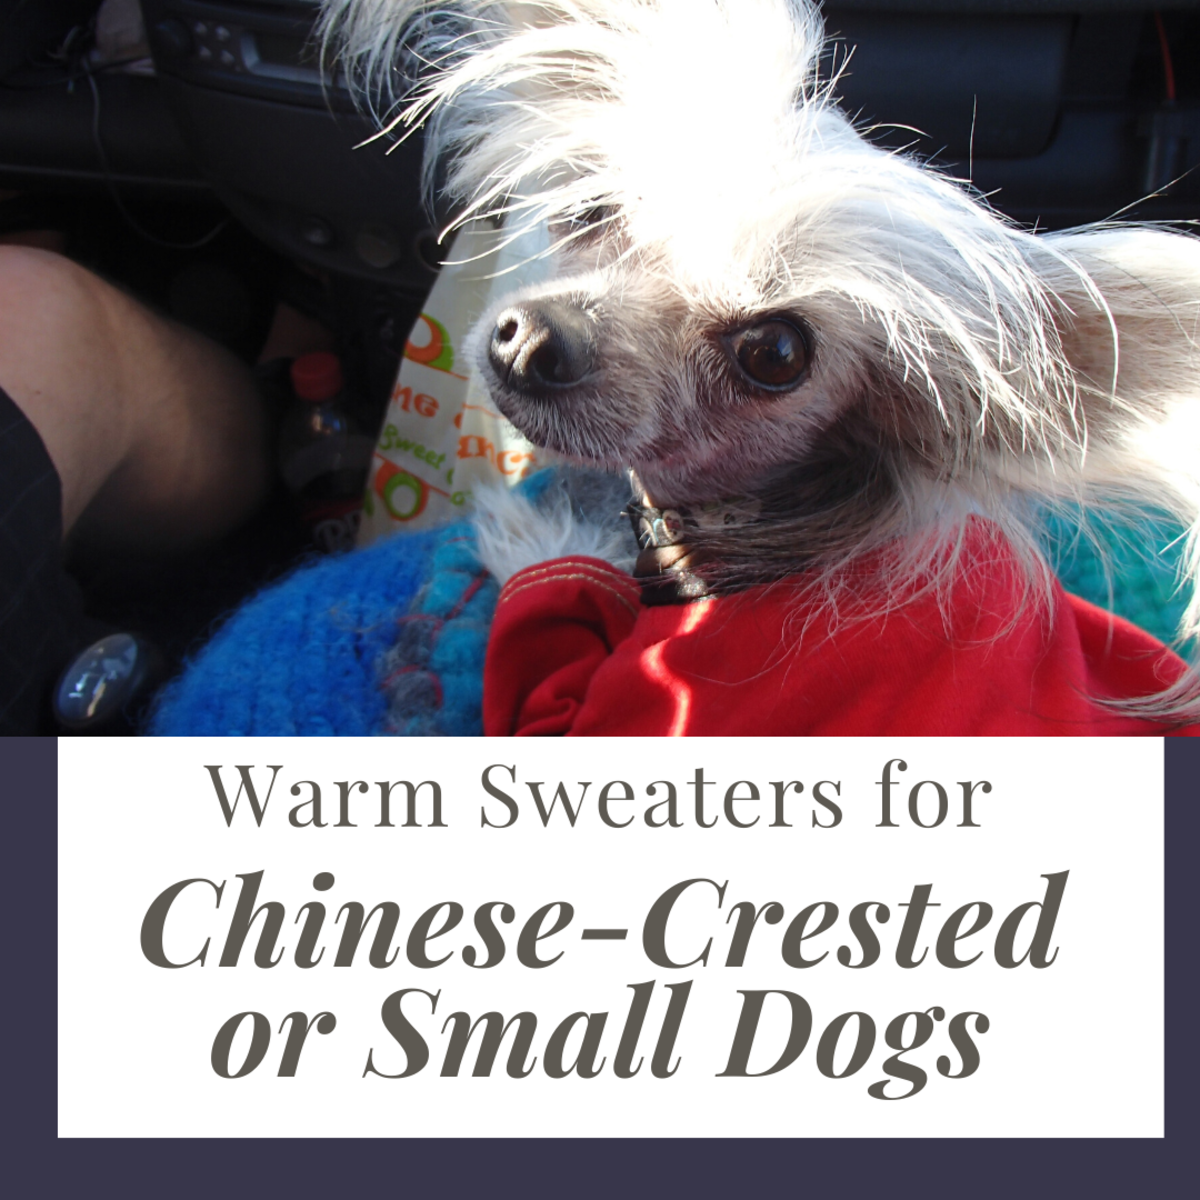 Find the Perfect Warm Sweater for Your Small Dog